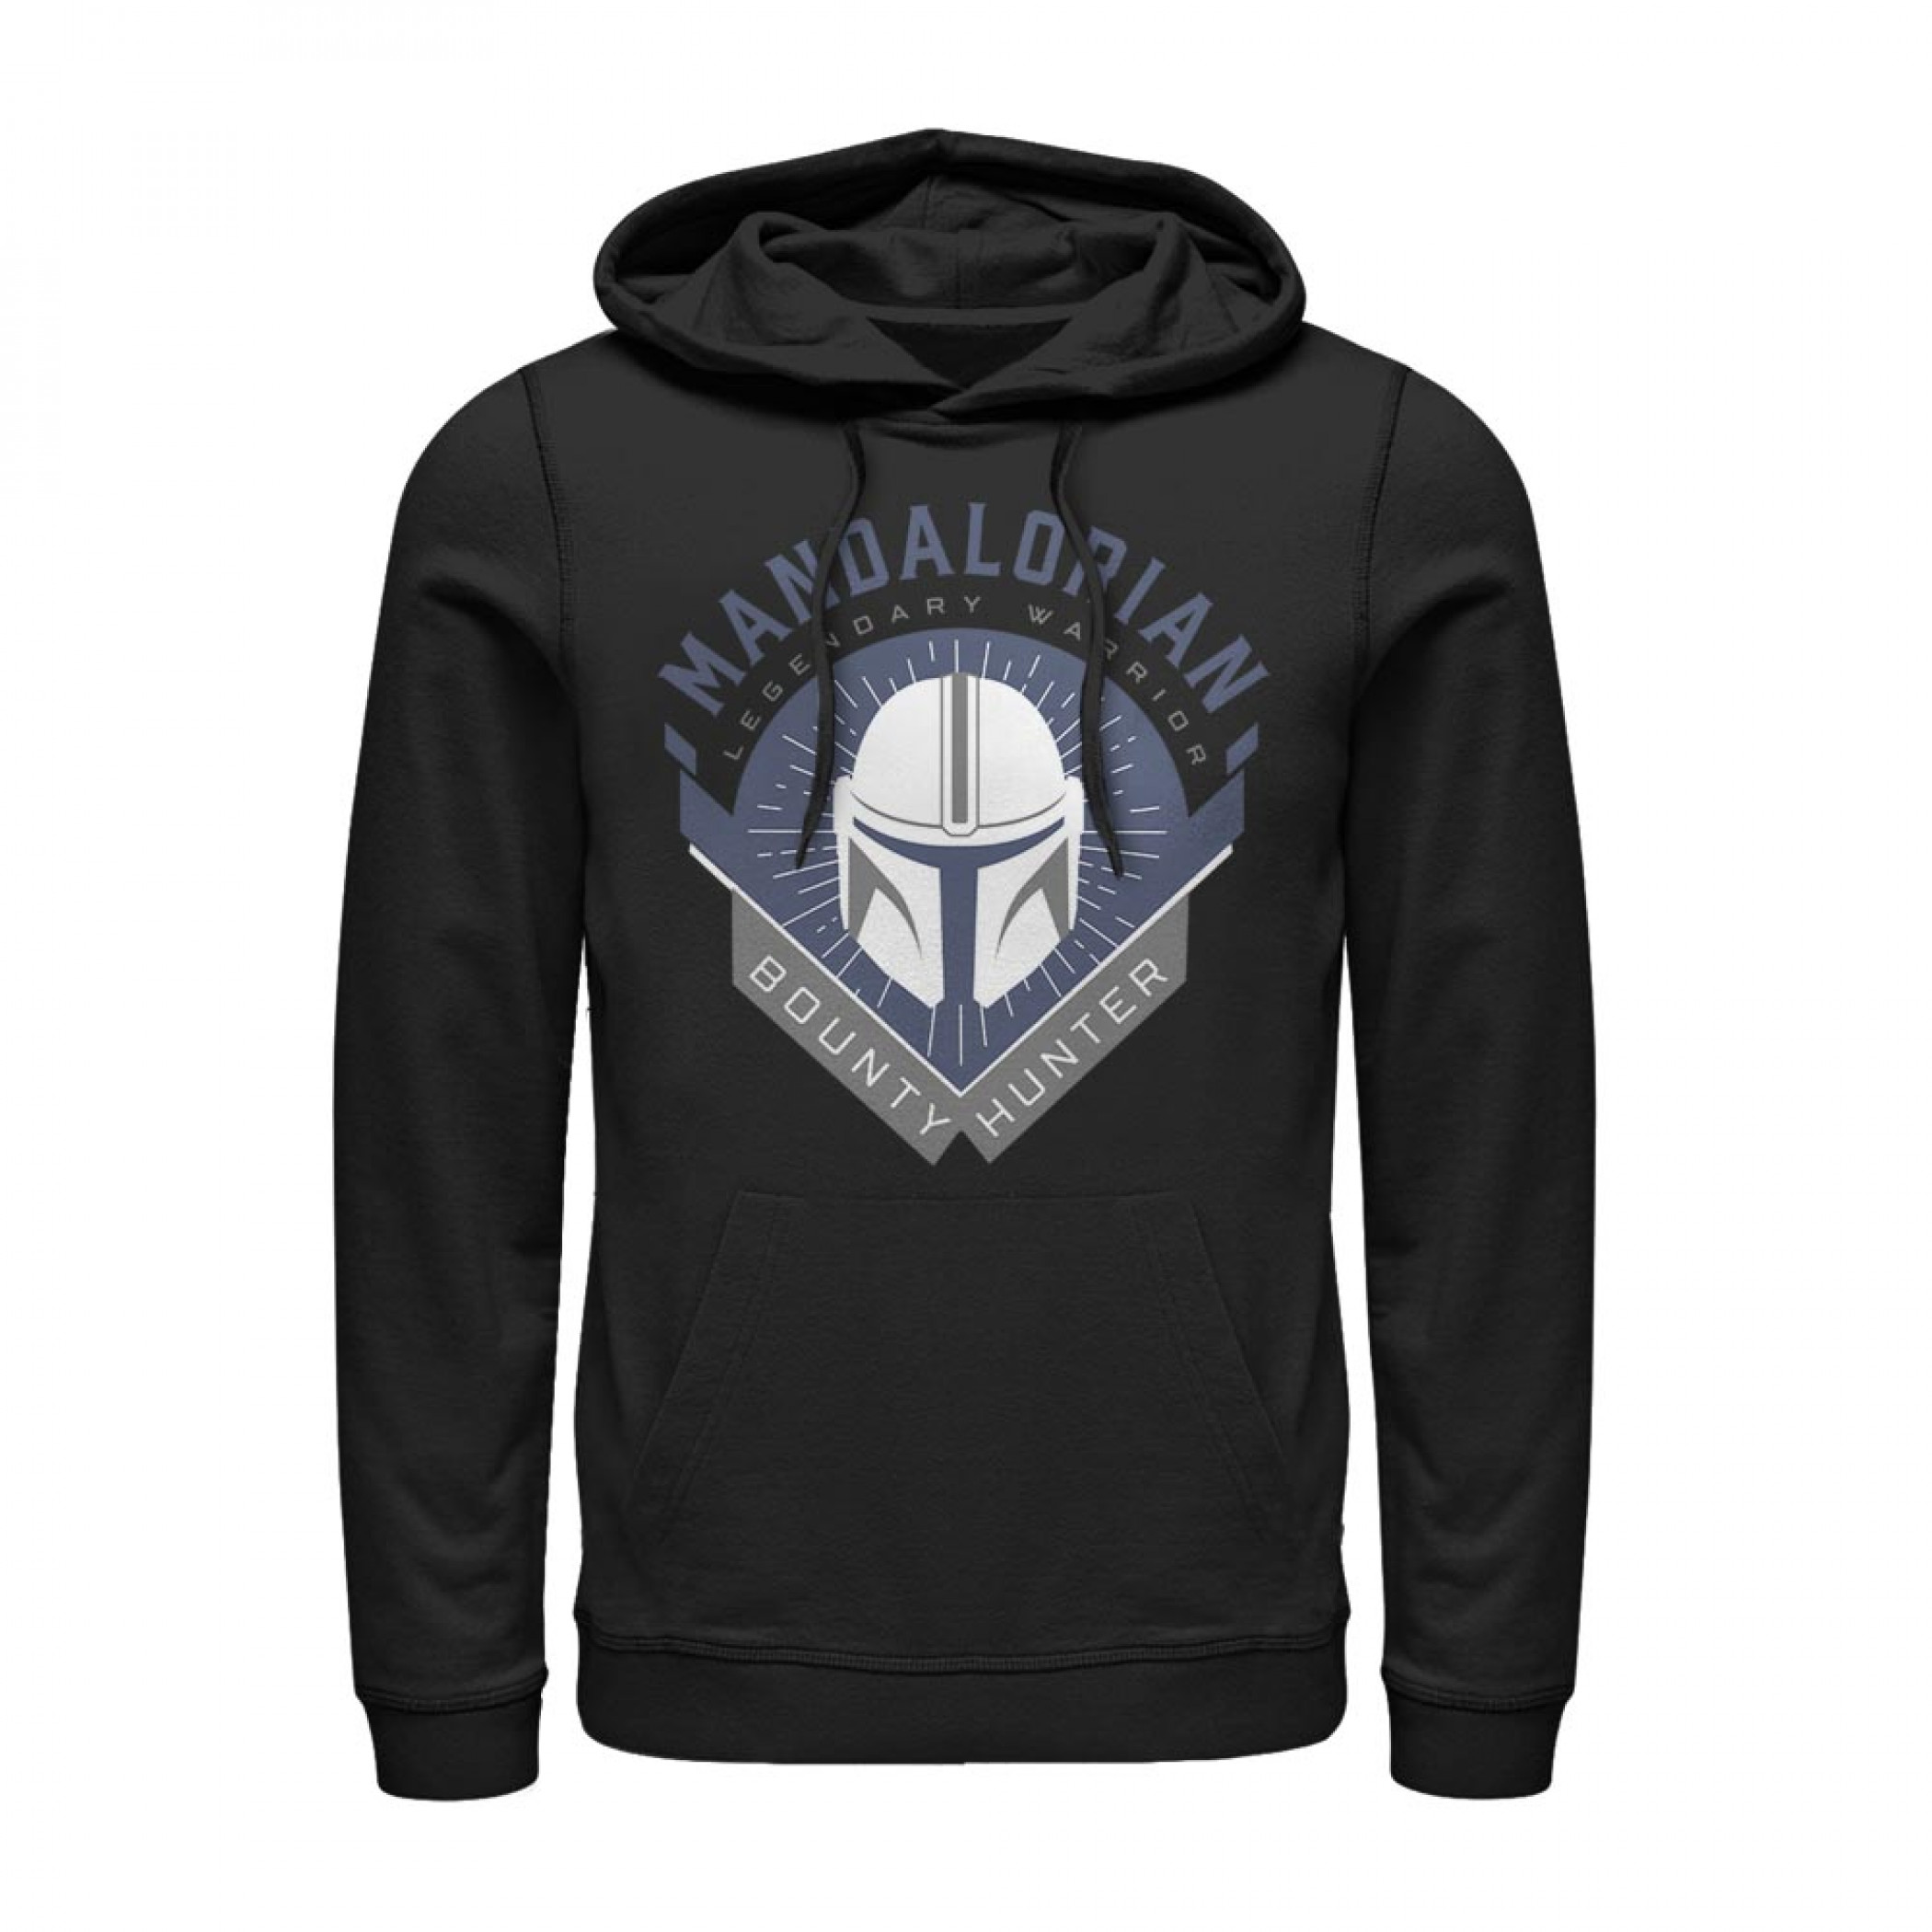 The Mandalorian Warrior Emblem Hoodie